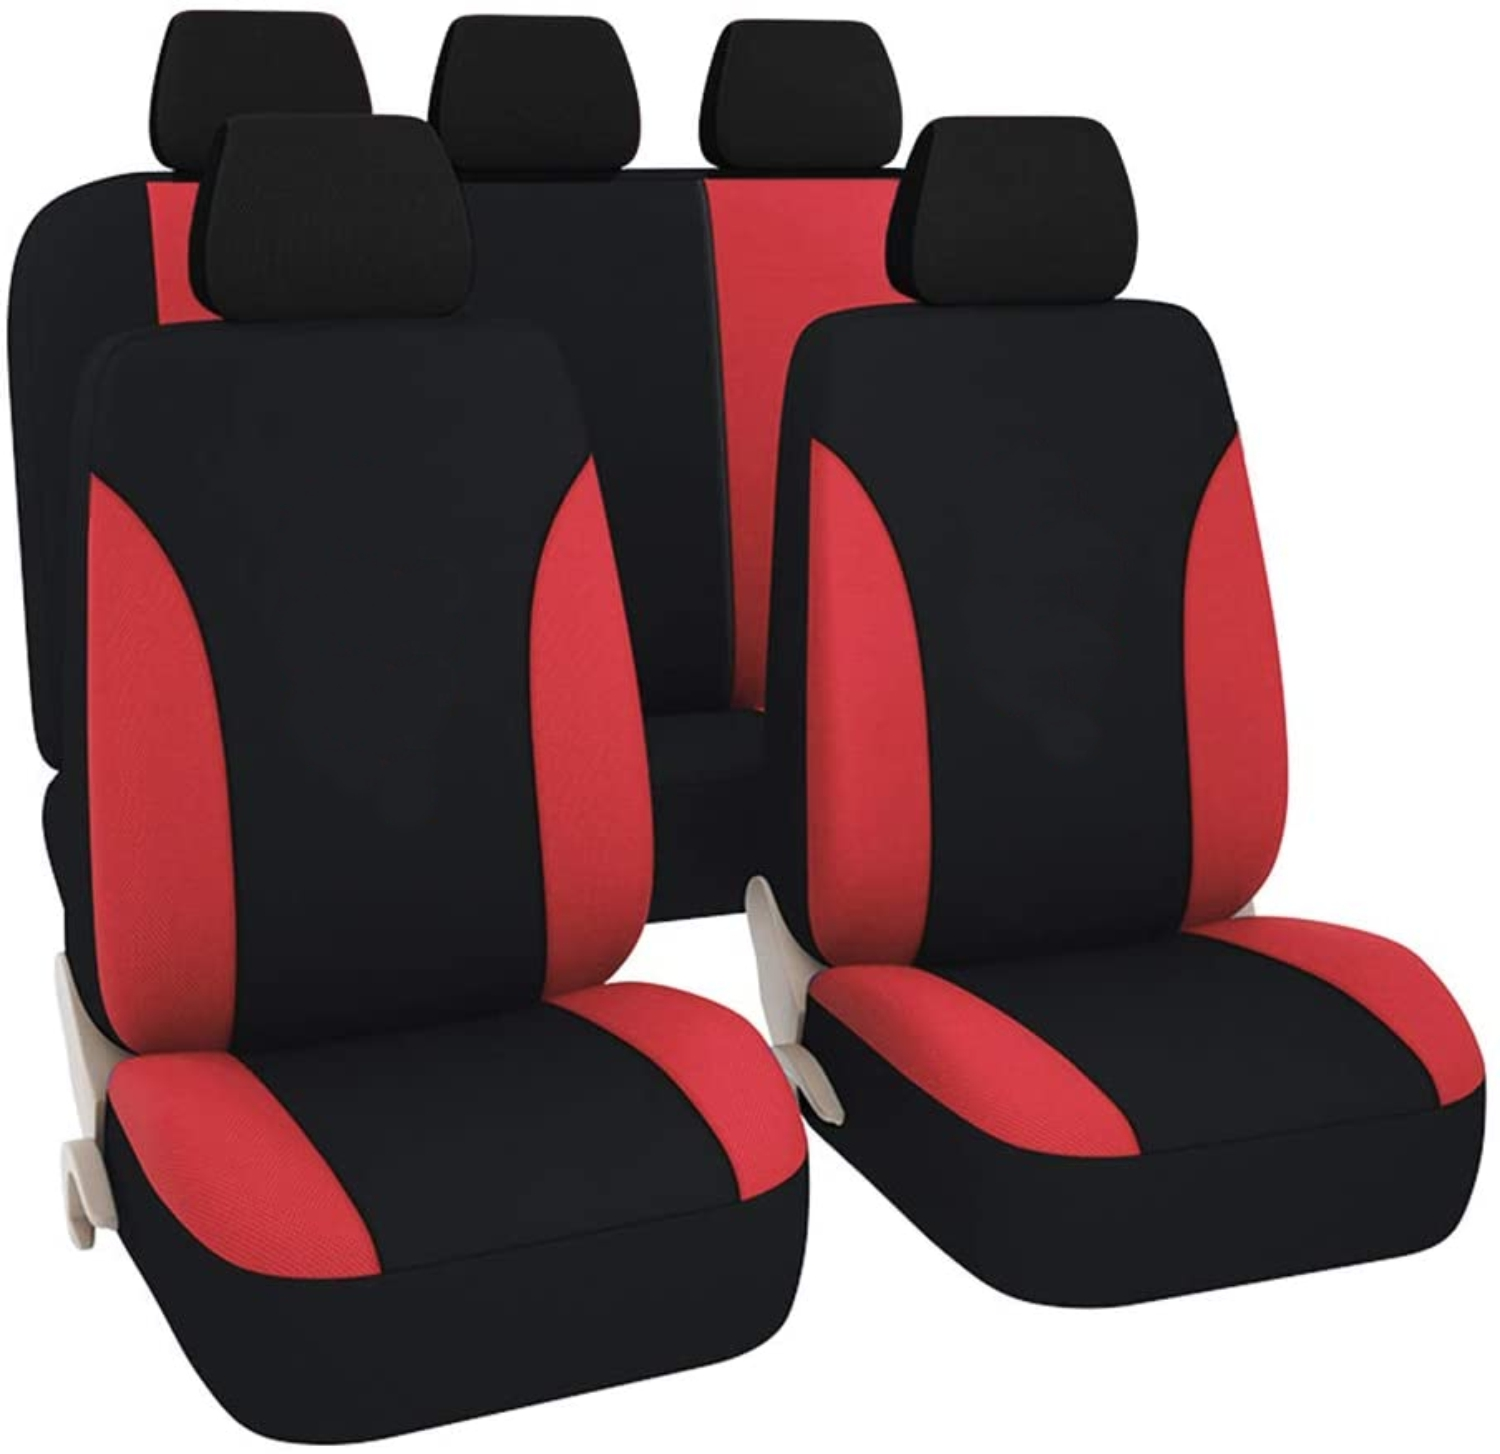 SB103 - Car Seat Cover set protector with SIDE AIRBAG BLACK / ROT